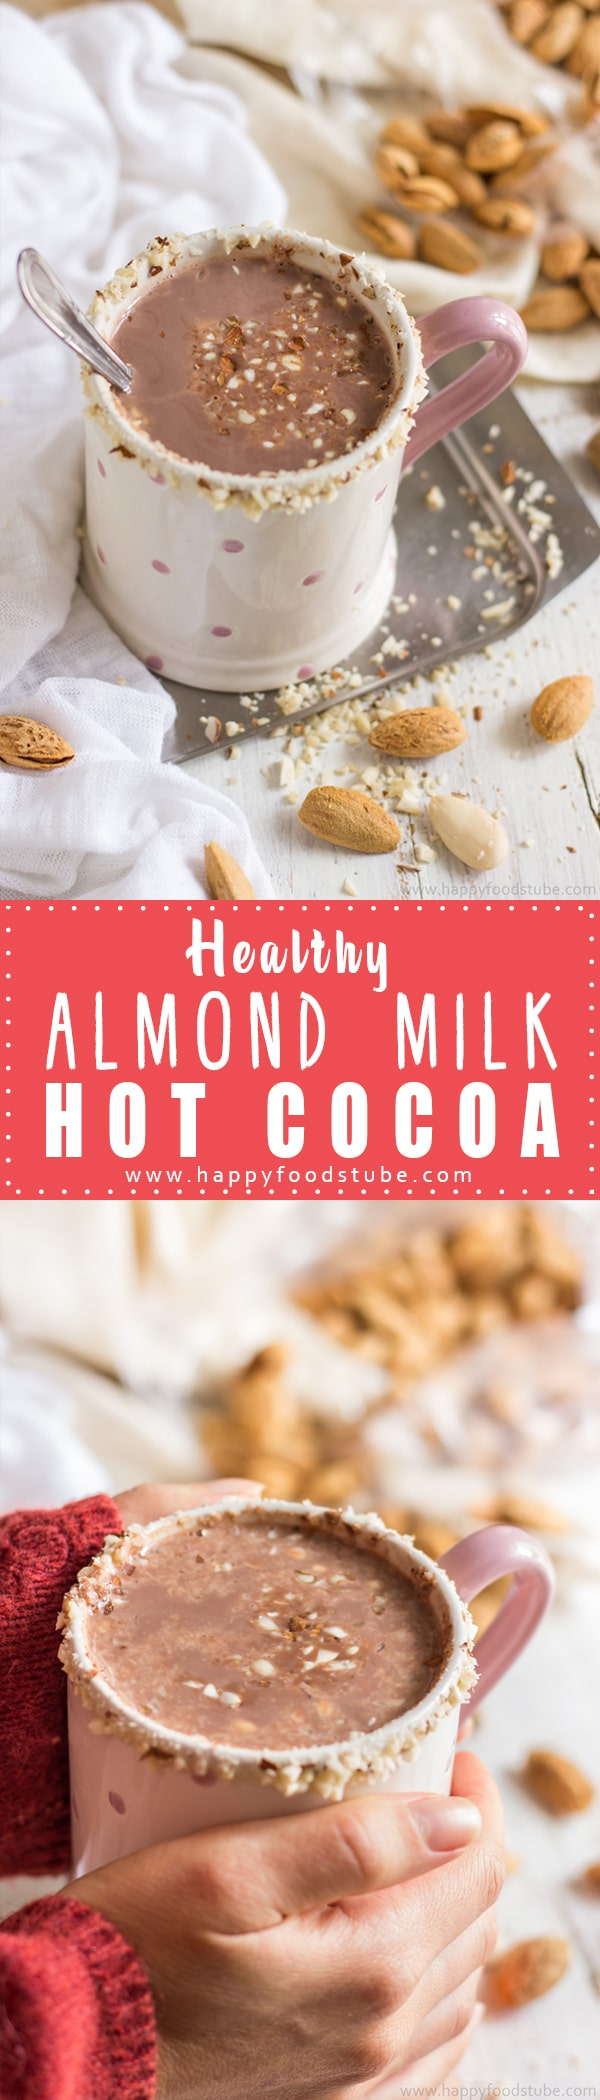 Healthy Almond Milk Hot Cocoa Recipe - 5 minutes & 4 ingredients is all what it takes to enjoy a cup of this guilt-free deliciousness. And it's vegan & dairy-free! | happyfoodstube.com